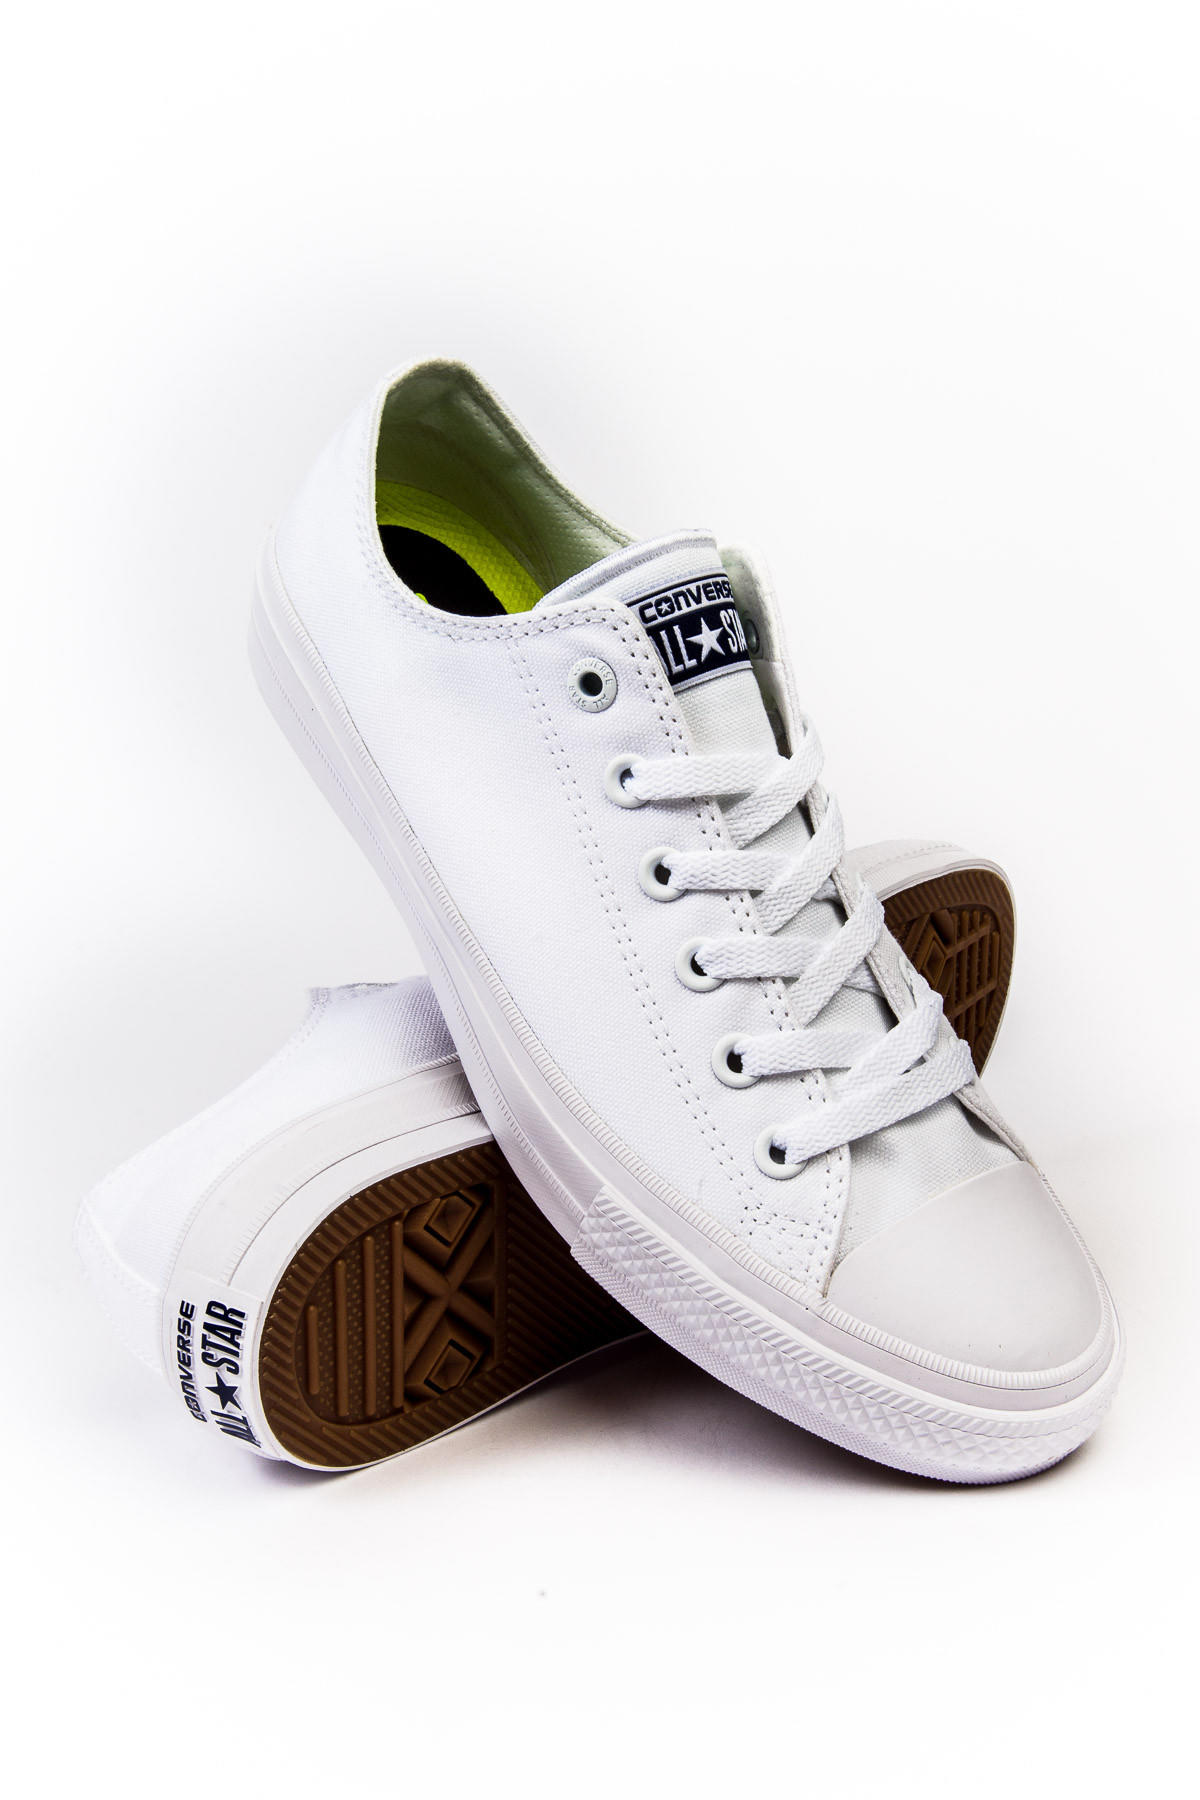 7cfaca73b43b Converse Chuck Taylor All Star II White from Probus